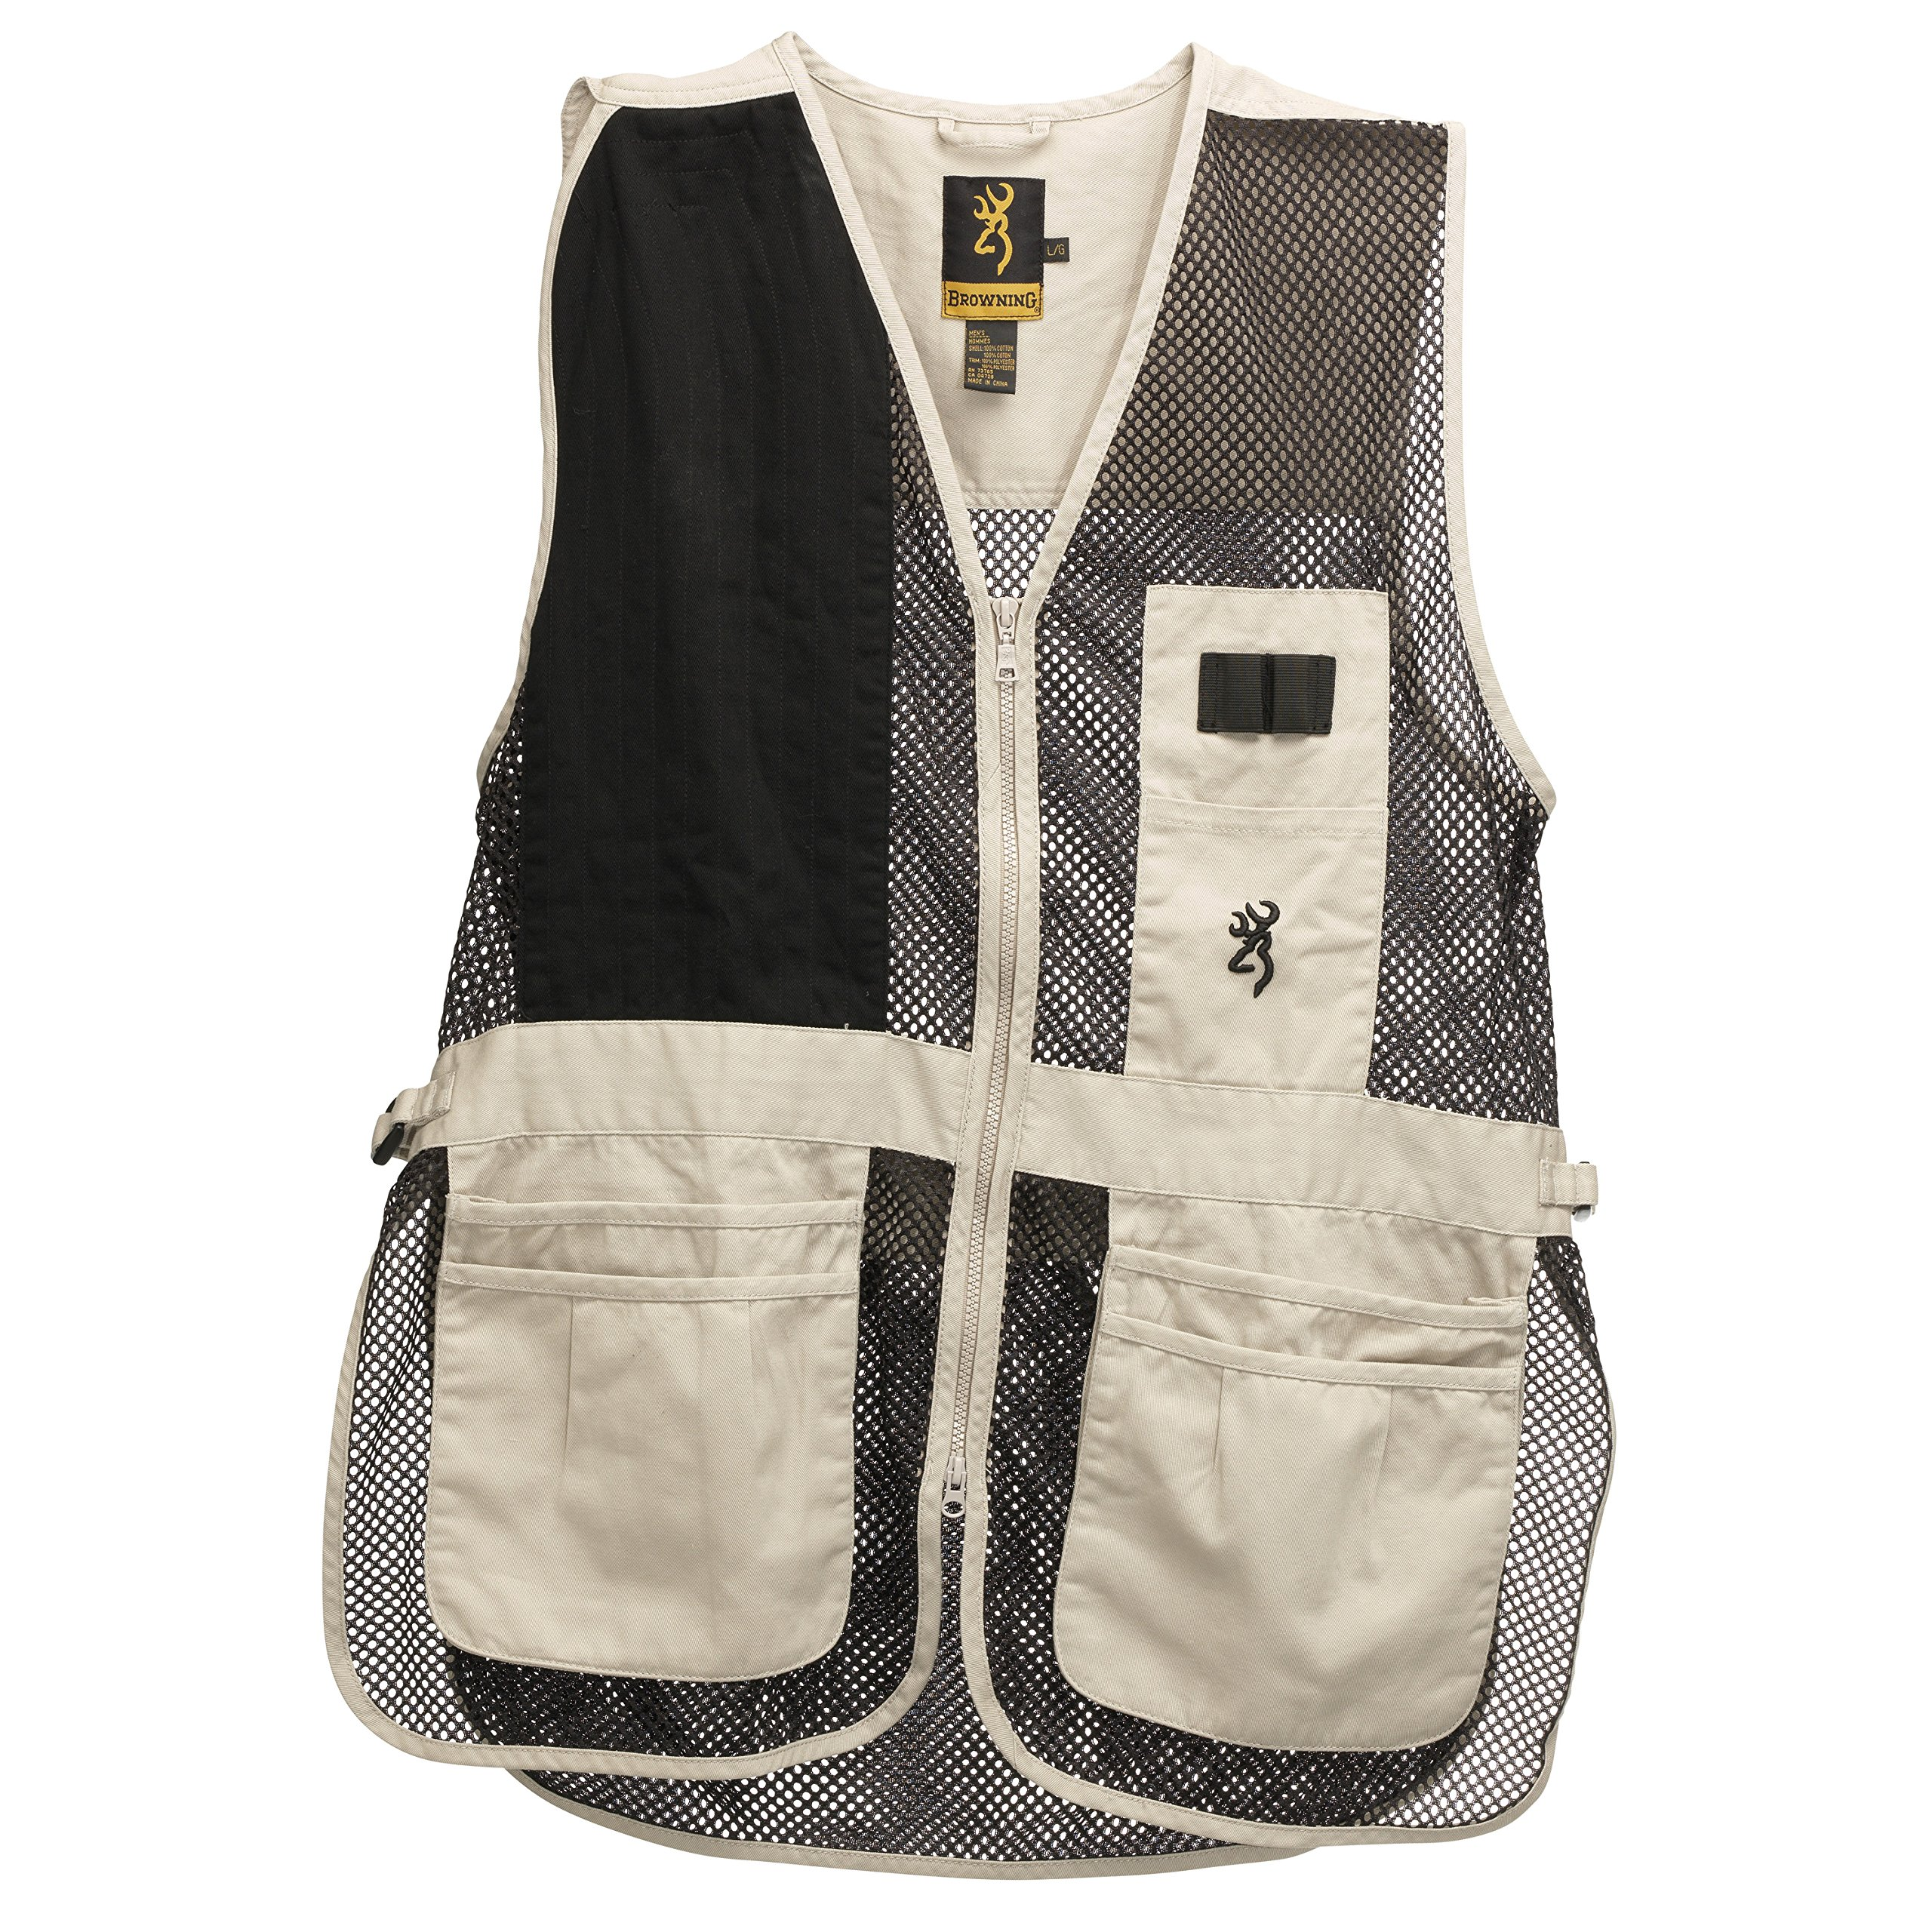 Browning, Trapper Creek Vest, Small, Sage/Black by Browning